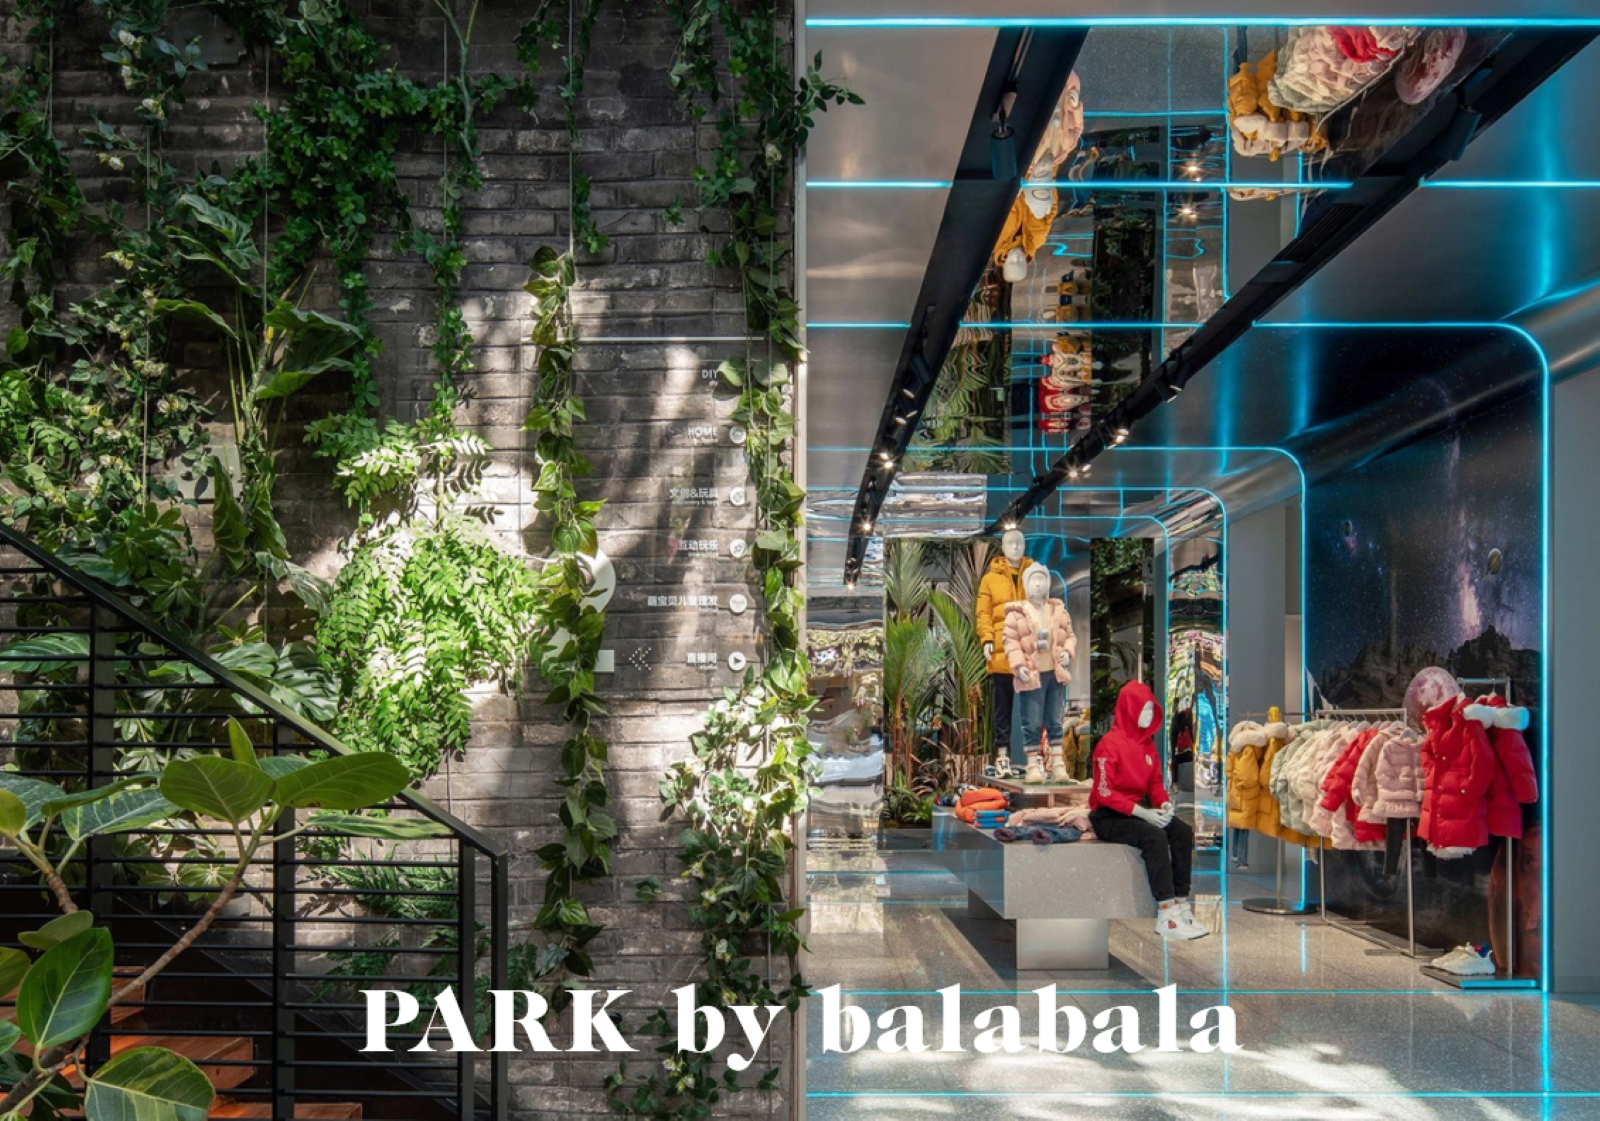 Park by balabala innovation tour missions mmm 0